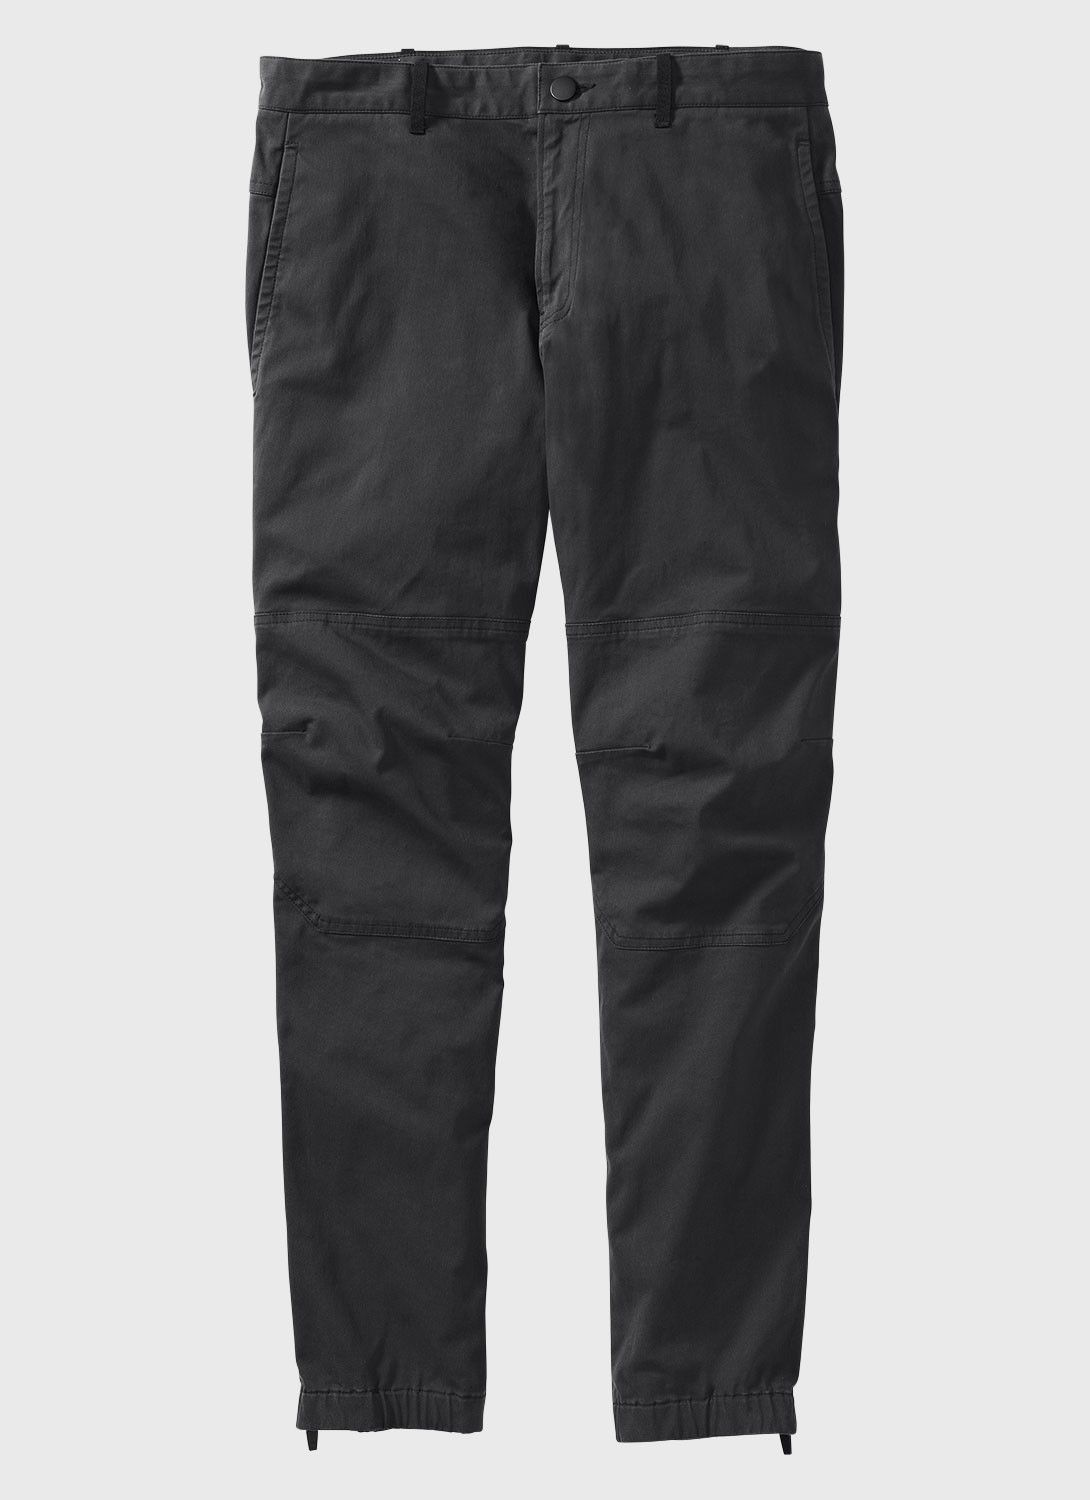 Mens Utility Pants Isaora